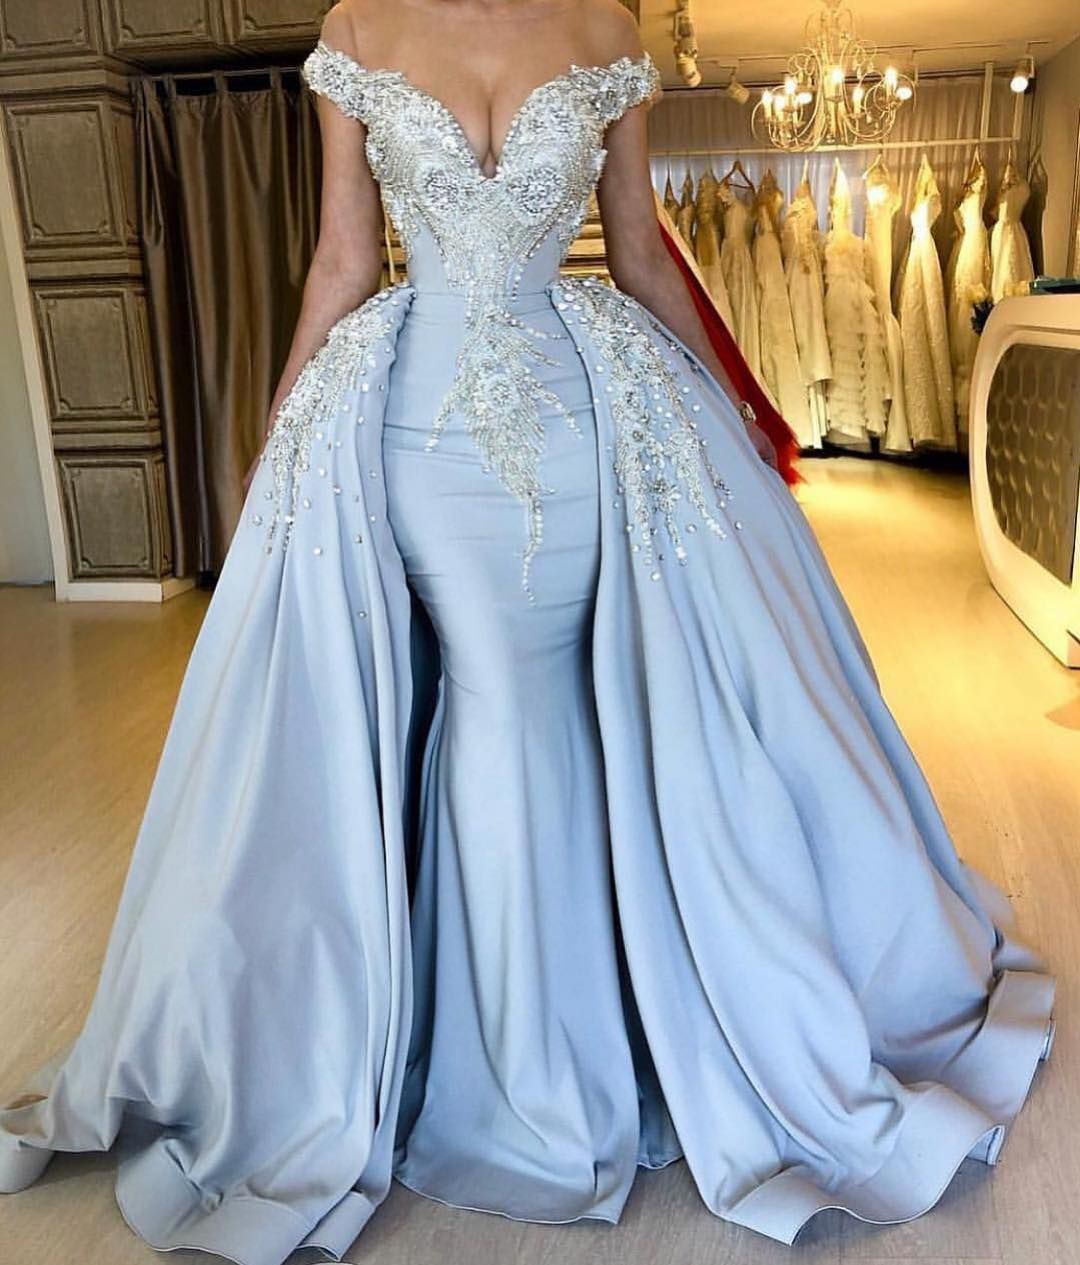 Blue Formal Dresses Ball Gowns Evening Wear And Wedding Designs Prom Dresses Long Blue Applique Wedding Dress Evening Gowns With Sleeves [ 1265 x 1080 Pixel ]